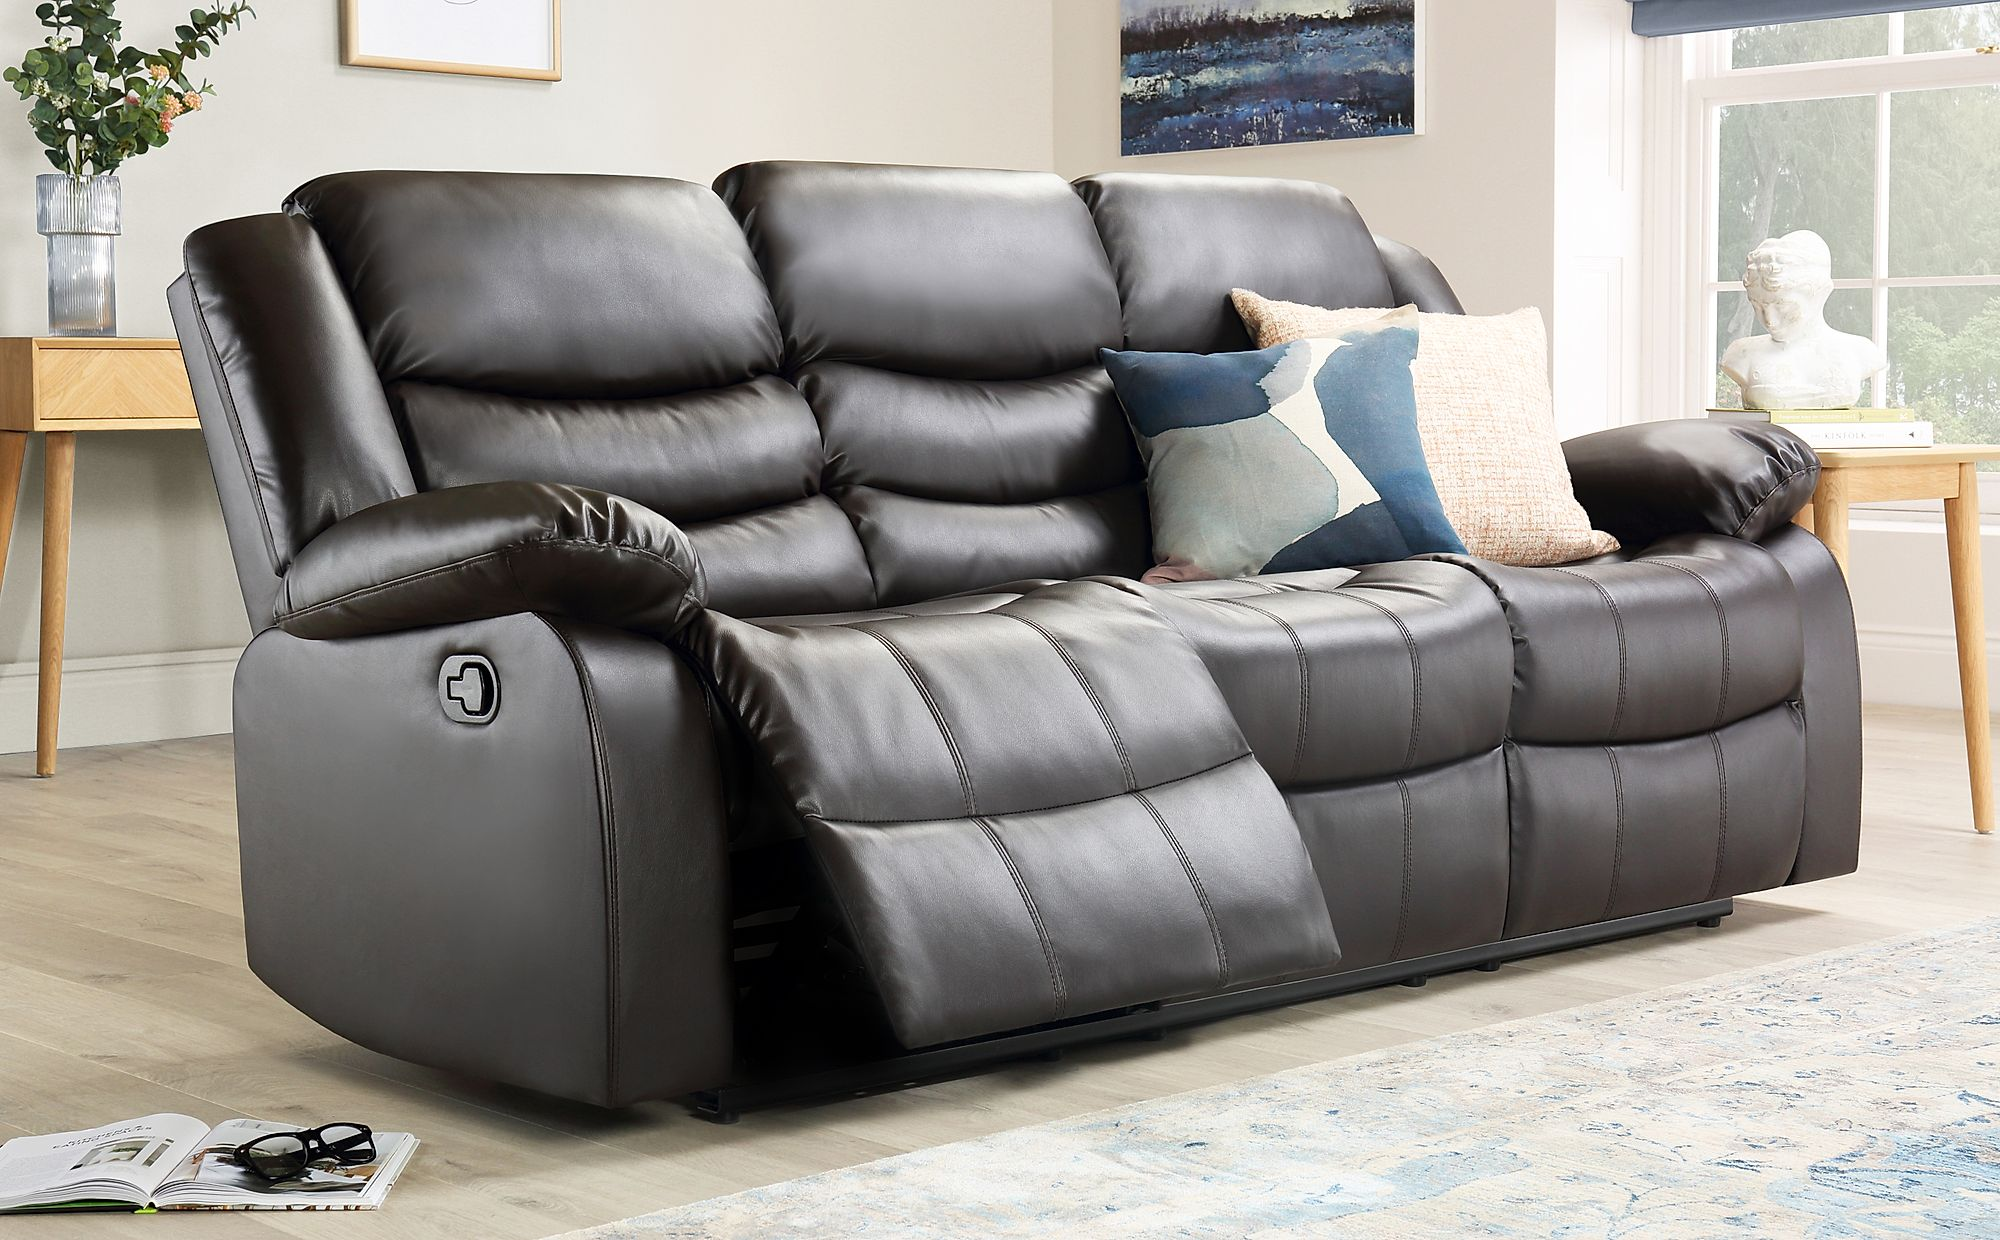 Sorrento Brown Leather 3 Seater Recliner Sofa Furniture